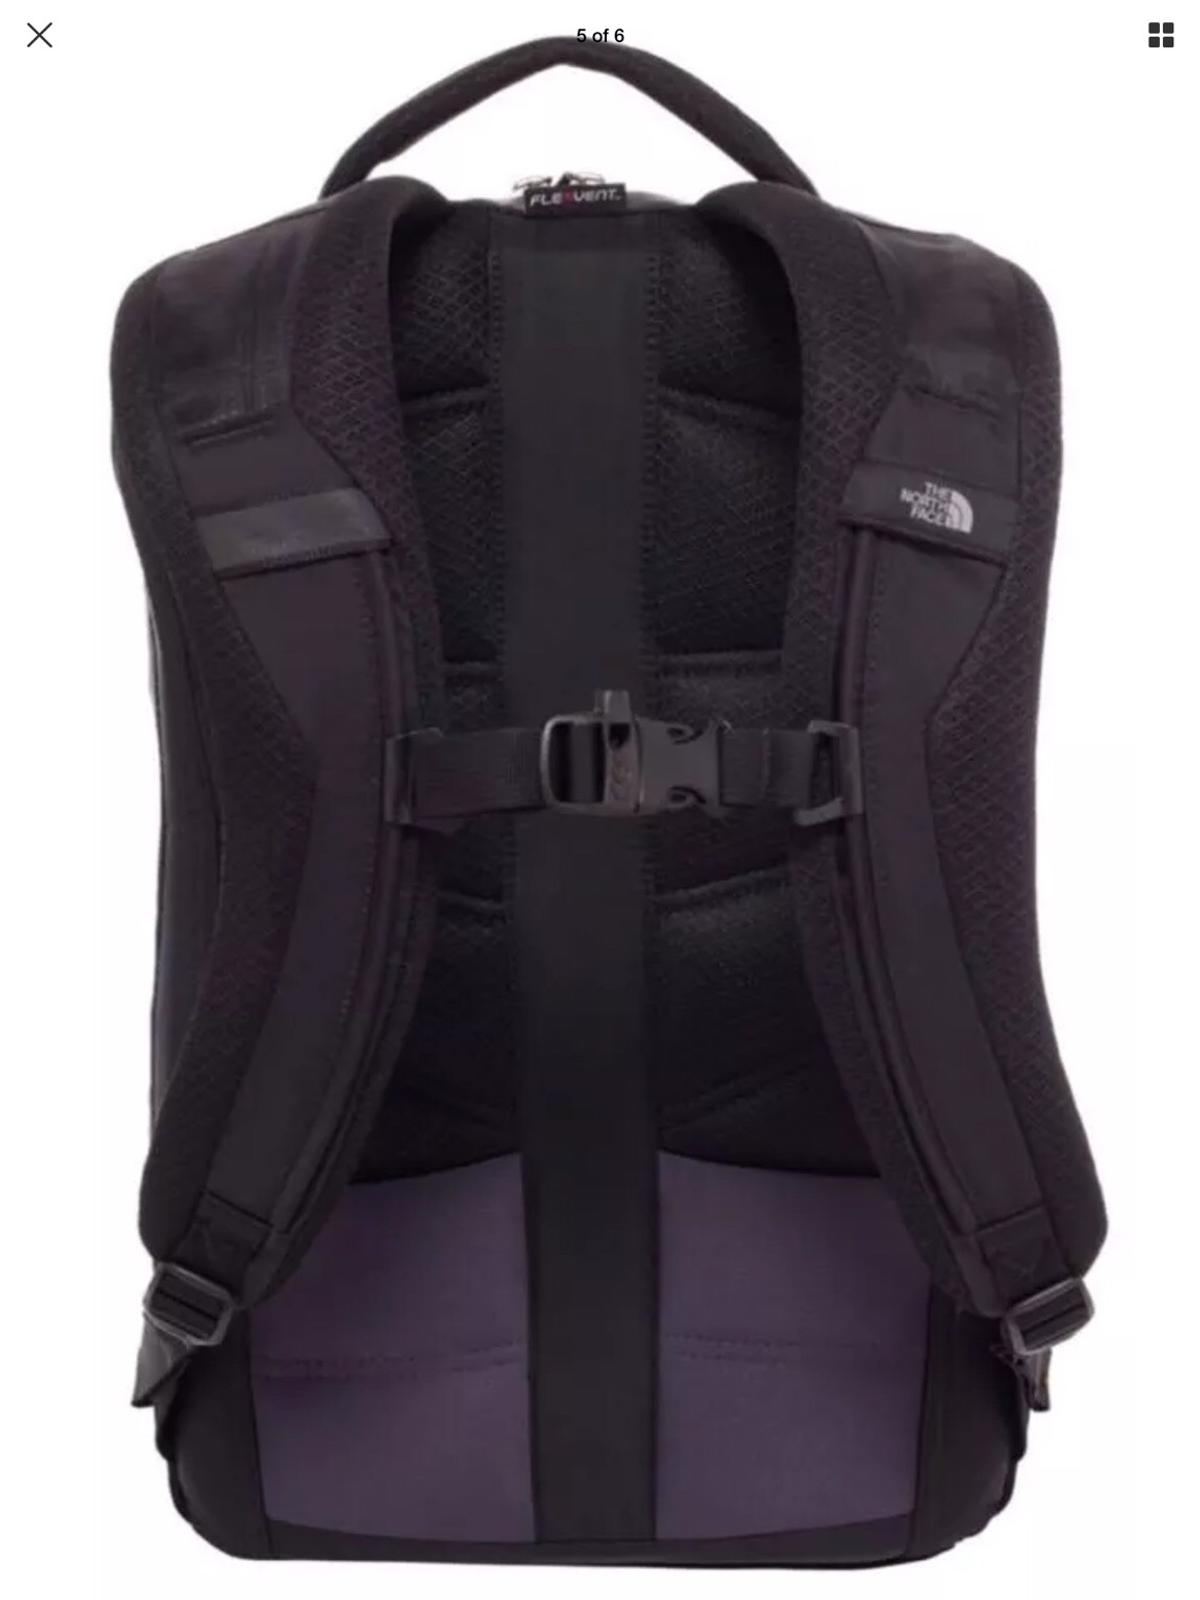 newest 4462f 145da Northface microbyte black laptop rucksack £75 in L4 ...